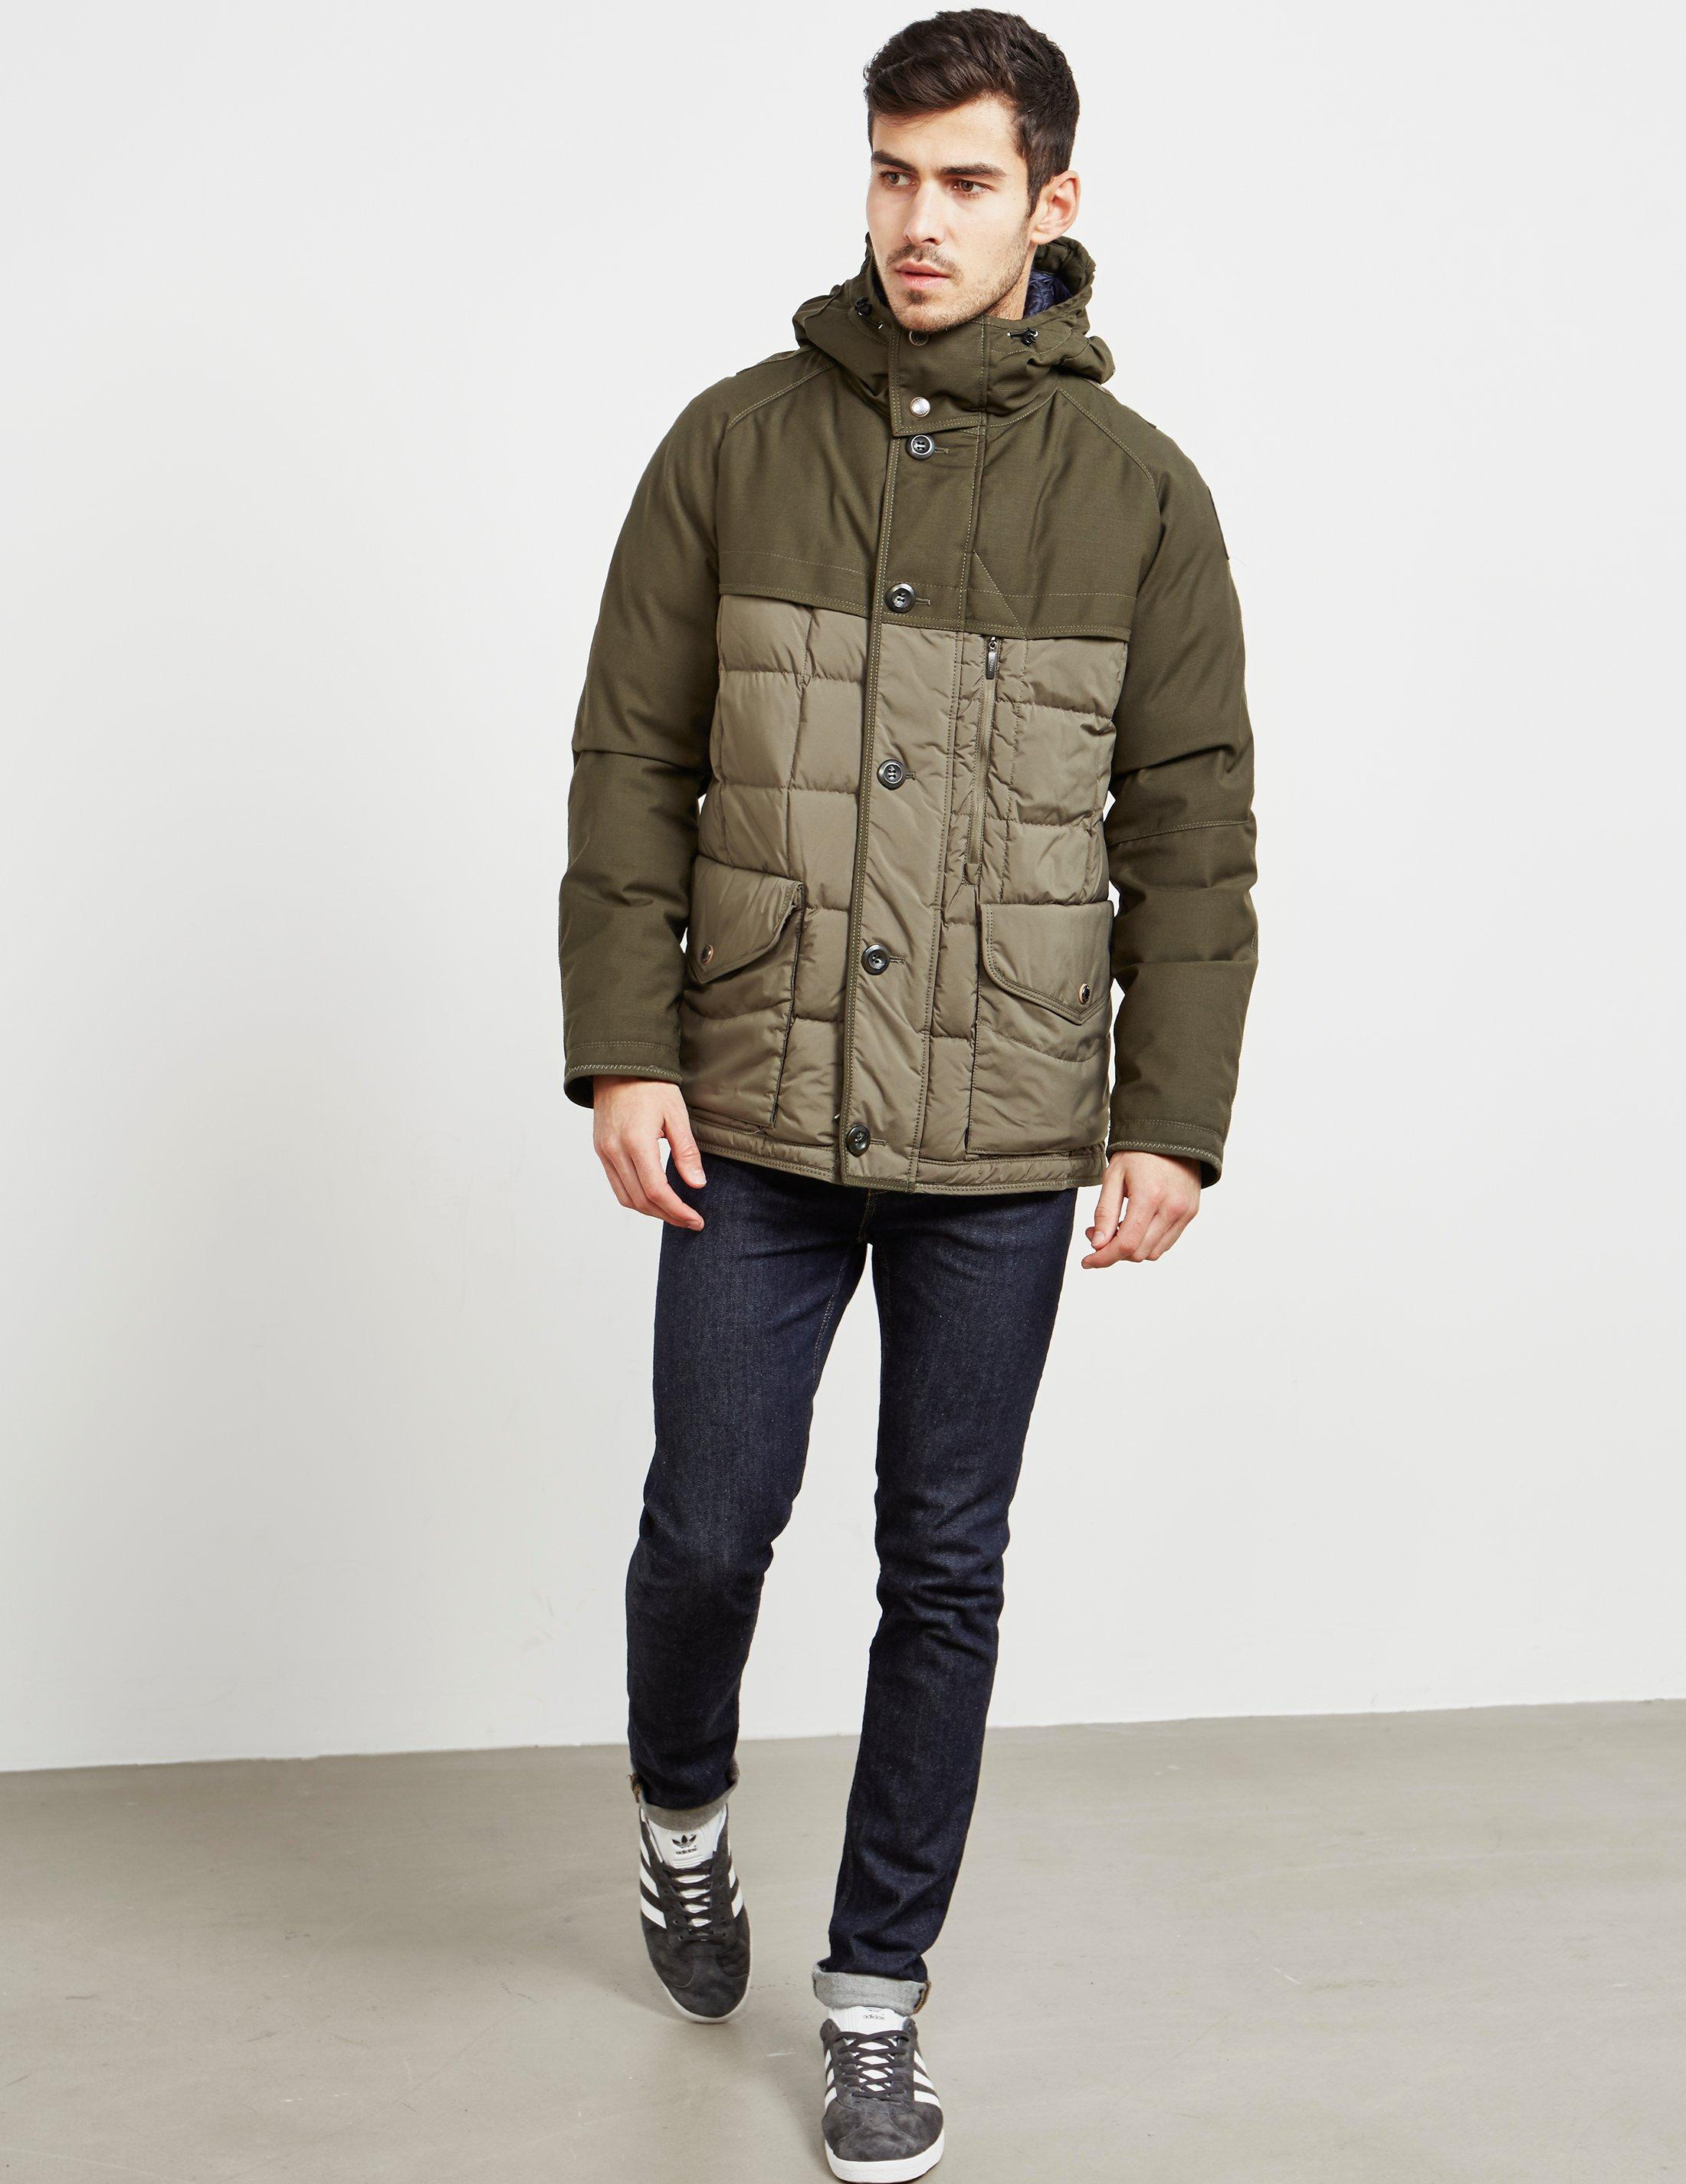 90e9d1c3bfdb Parajumpers Freddy Heritage Parka Jacket Green in Green for Men - Lyst